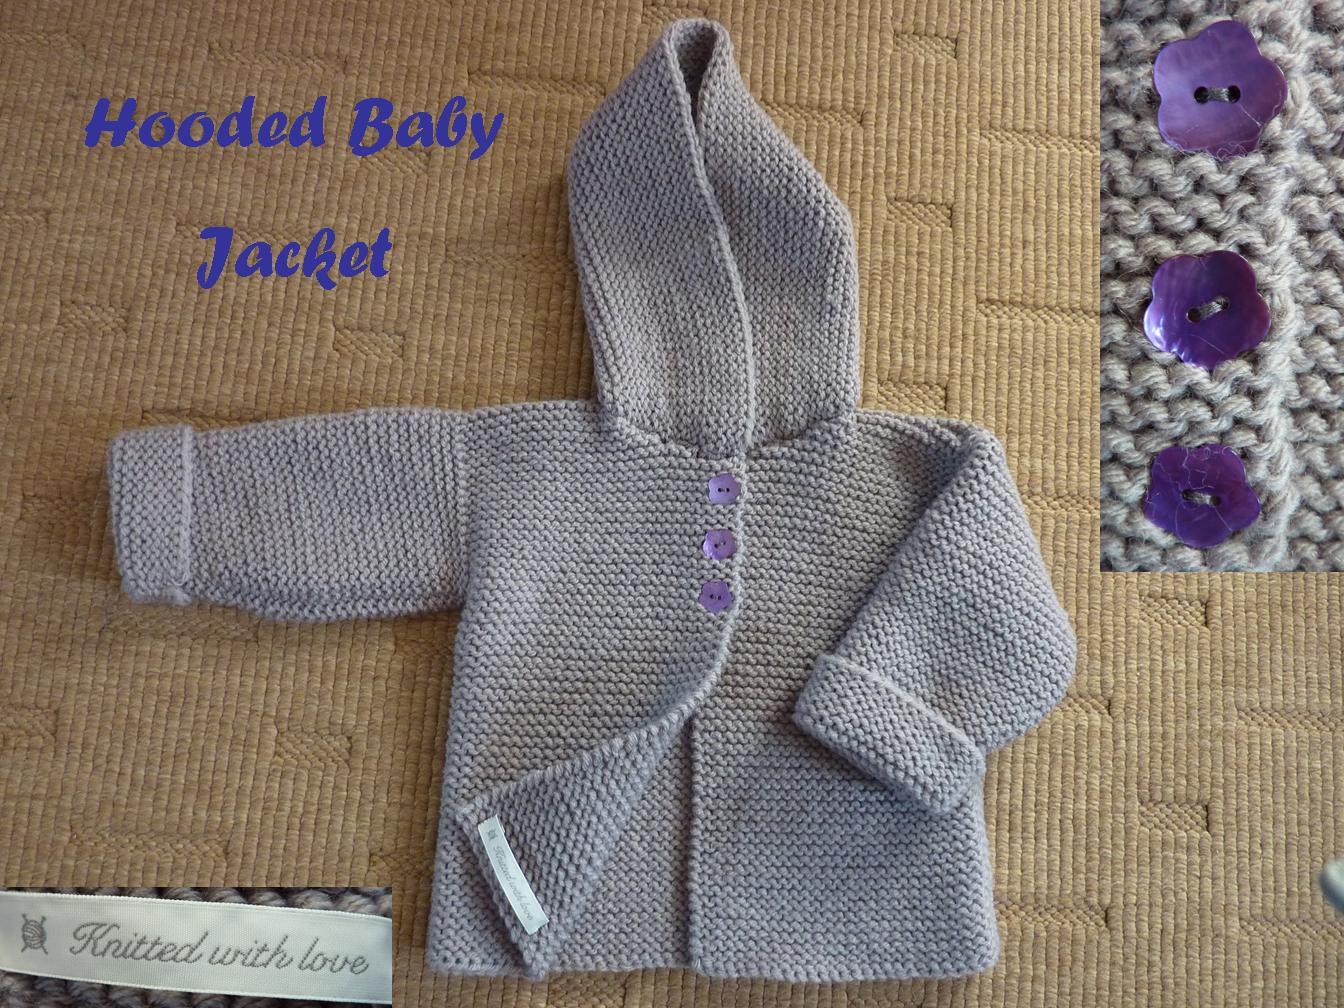 Knitting Pattern Hooded Sweater - Cashmere Sweater England